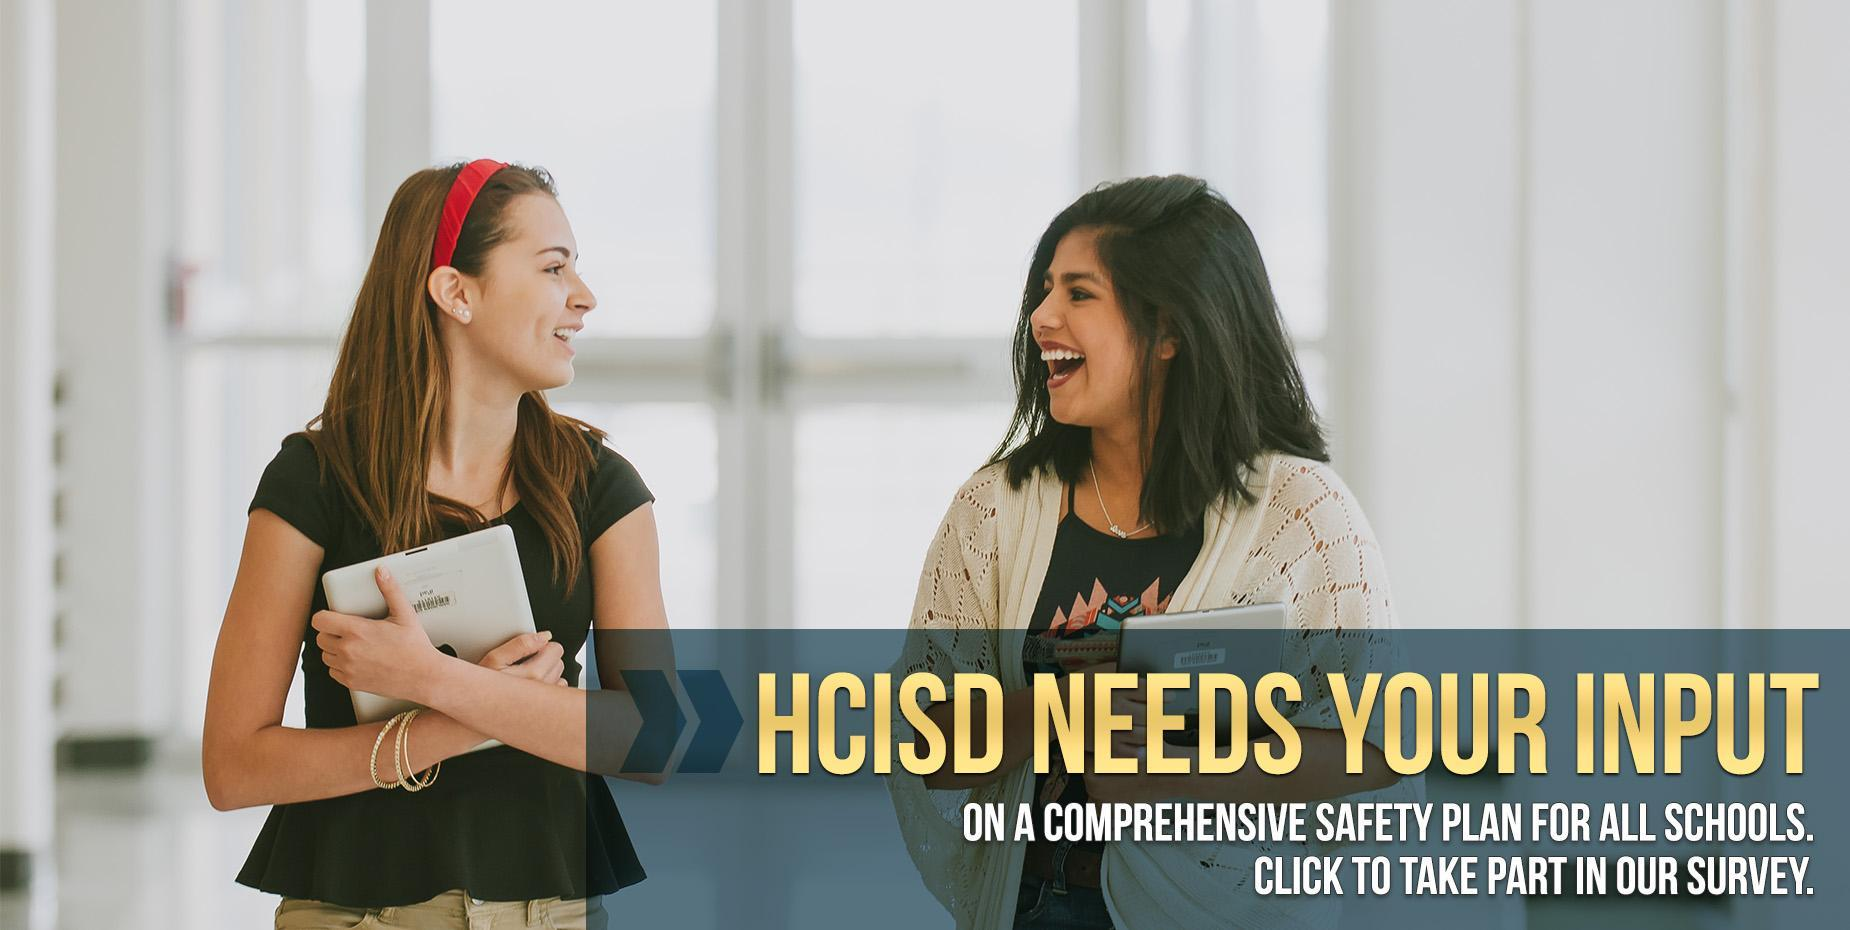 HCISD needs your input on comprehensive safety plan for all schools